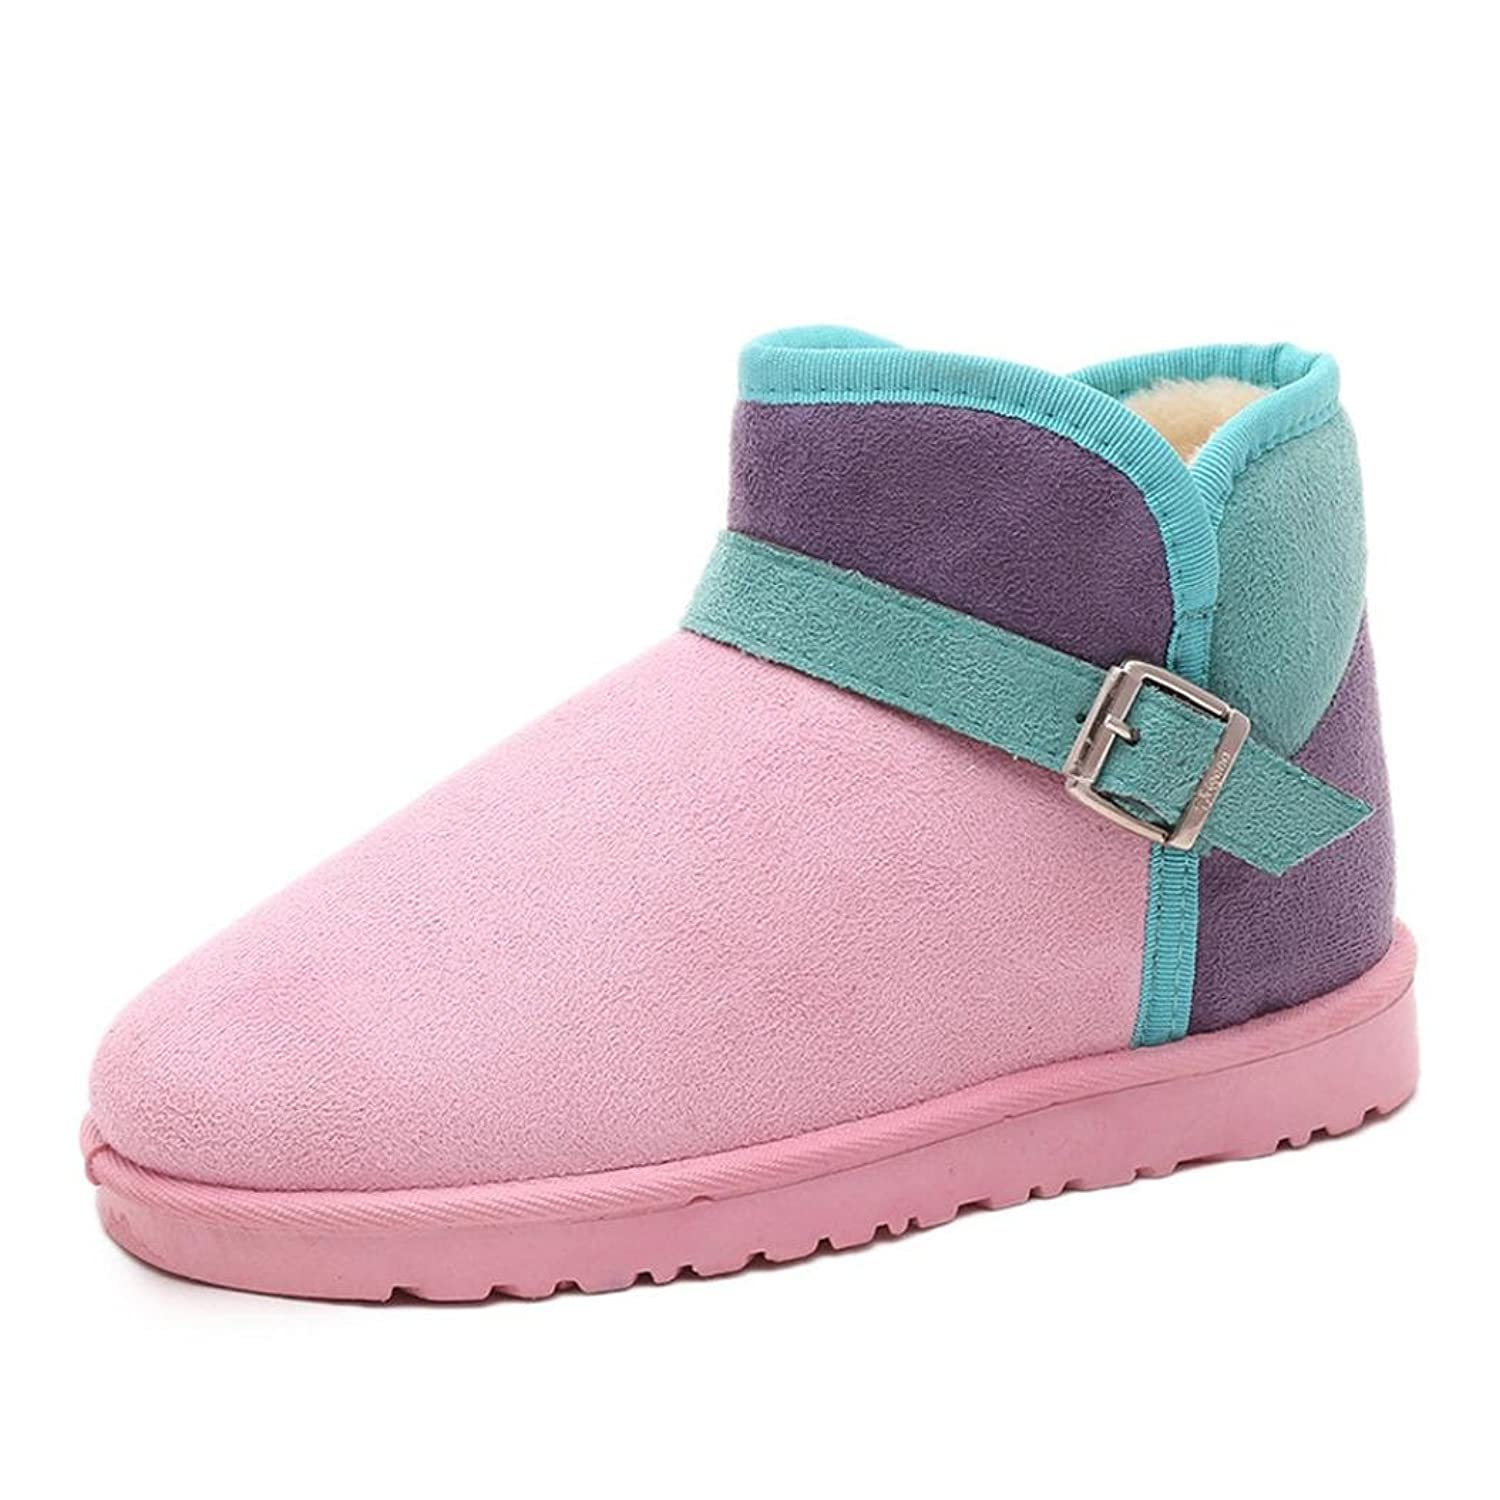 ☆ ▷ ♤ Pretty Women's Winter Snow Boots